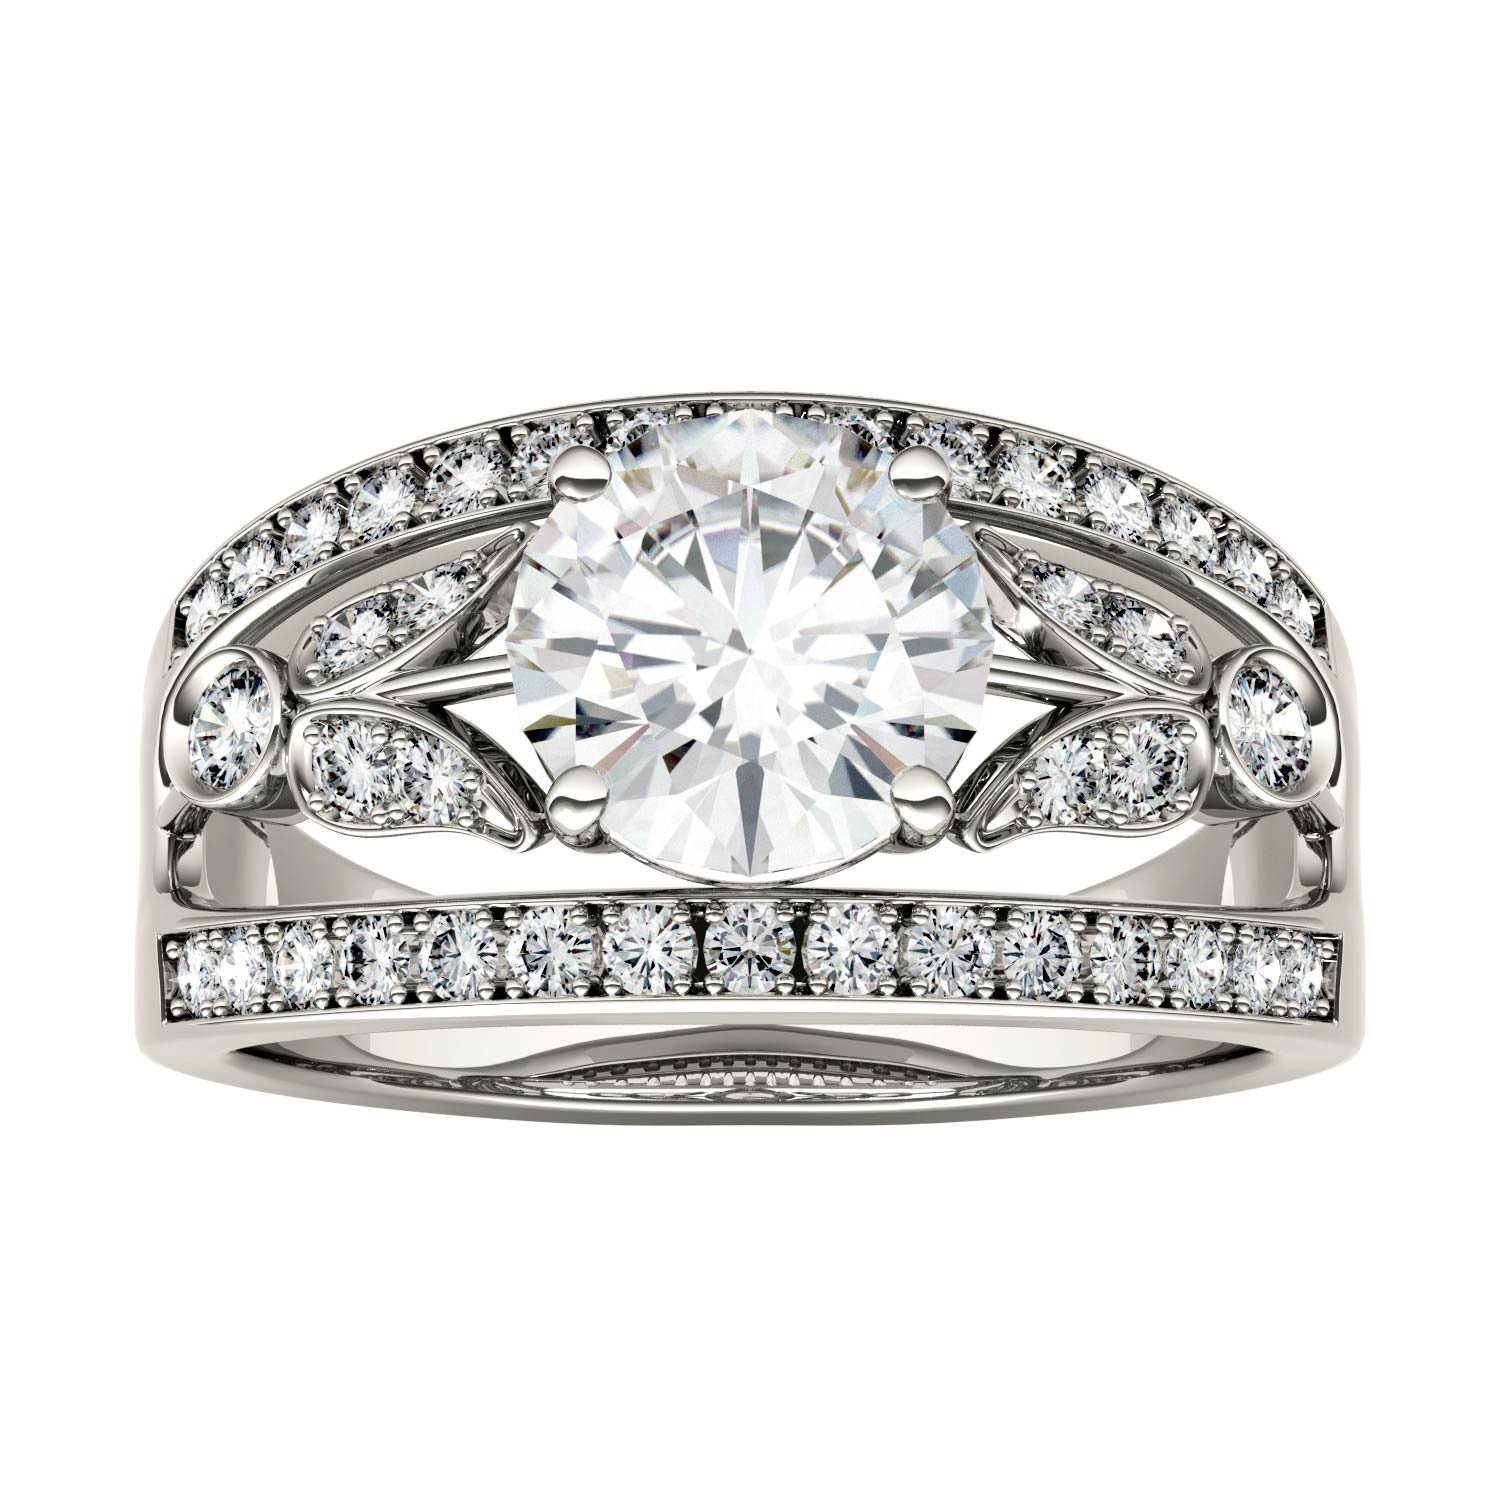 Forever Brilliant Round 7.5mm Moissanite Ring-size 7, 1.91cttw DEW By Charles & Colvard